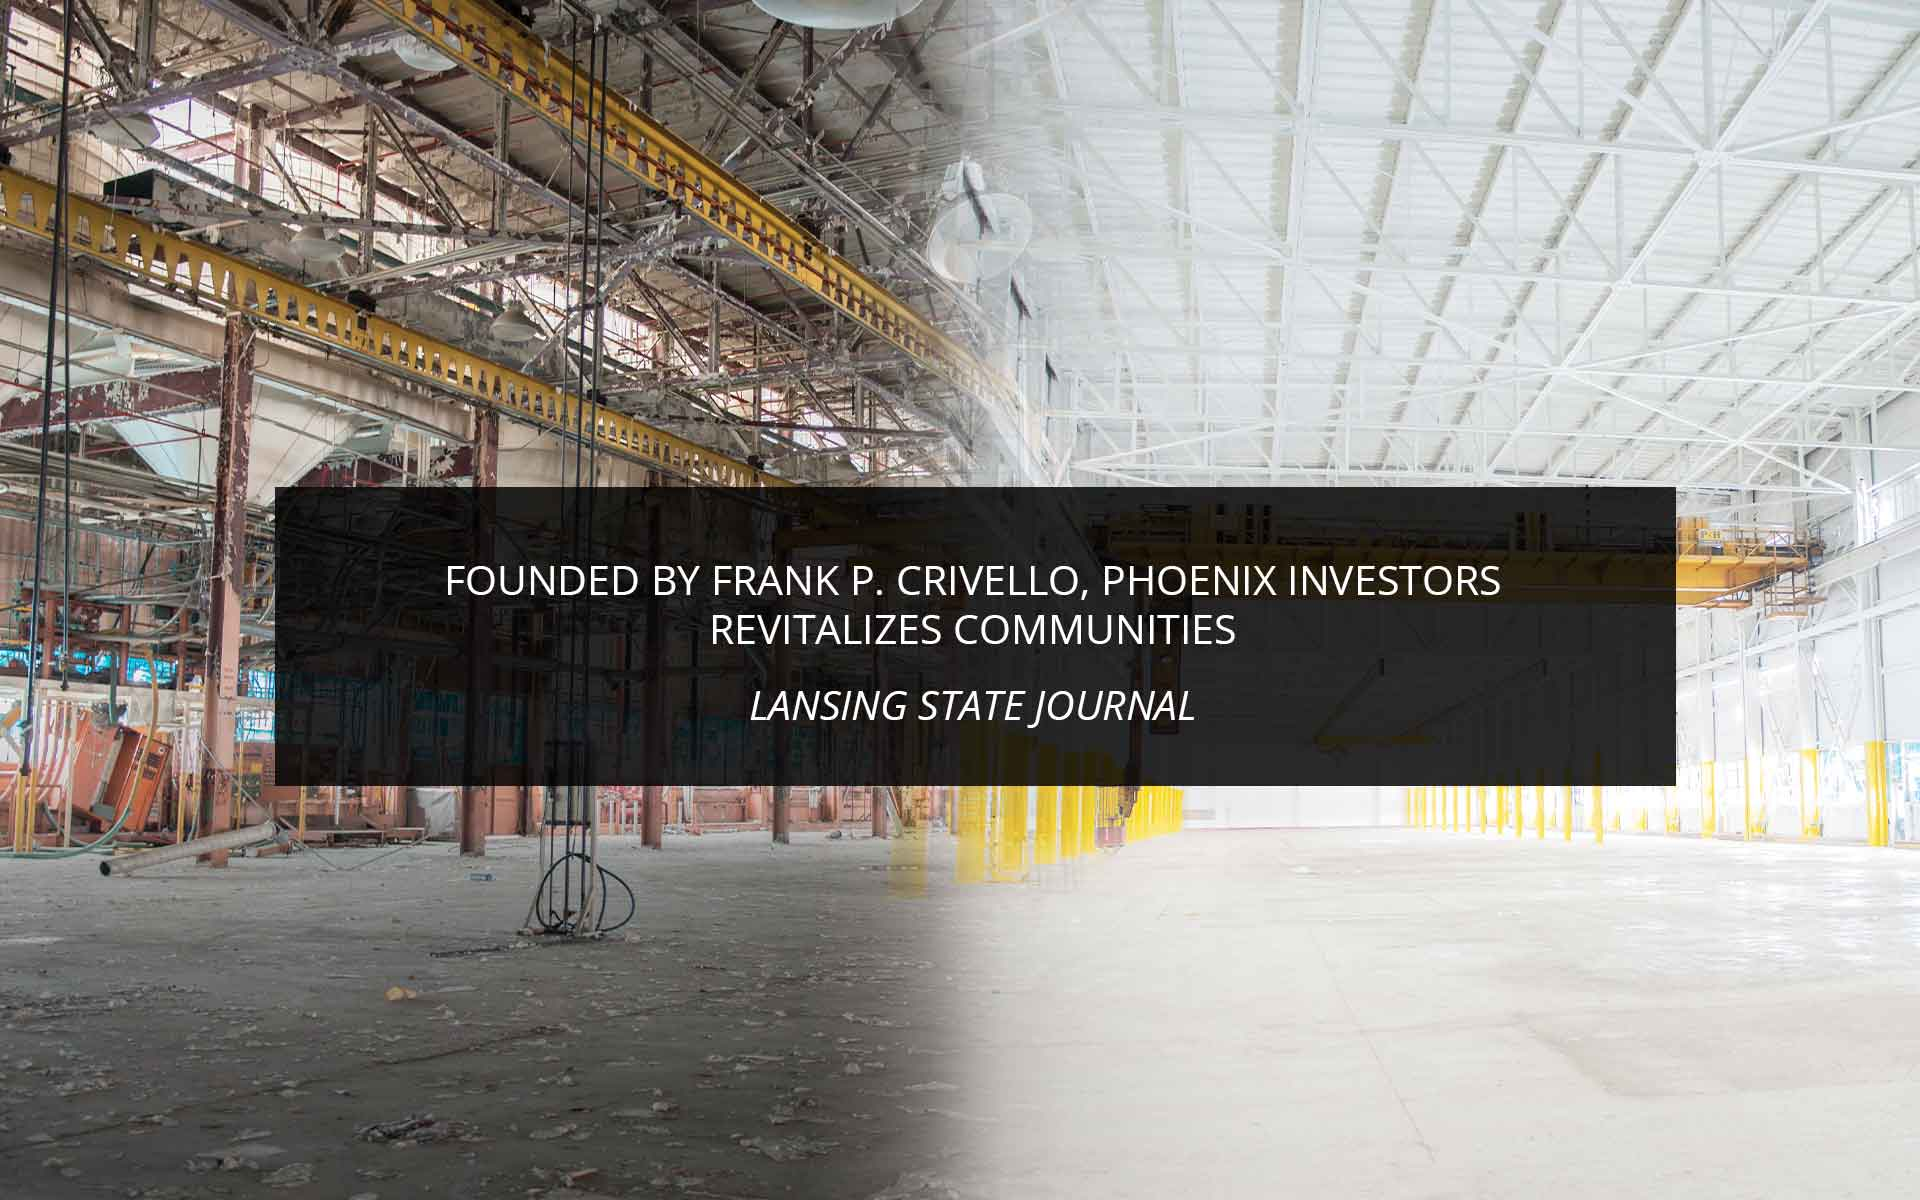 Founded by Frank P. Crivello, Phoenix Investors revitalizes communities